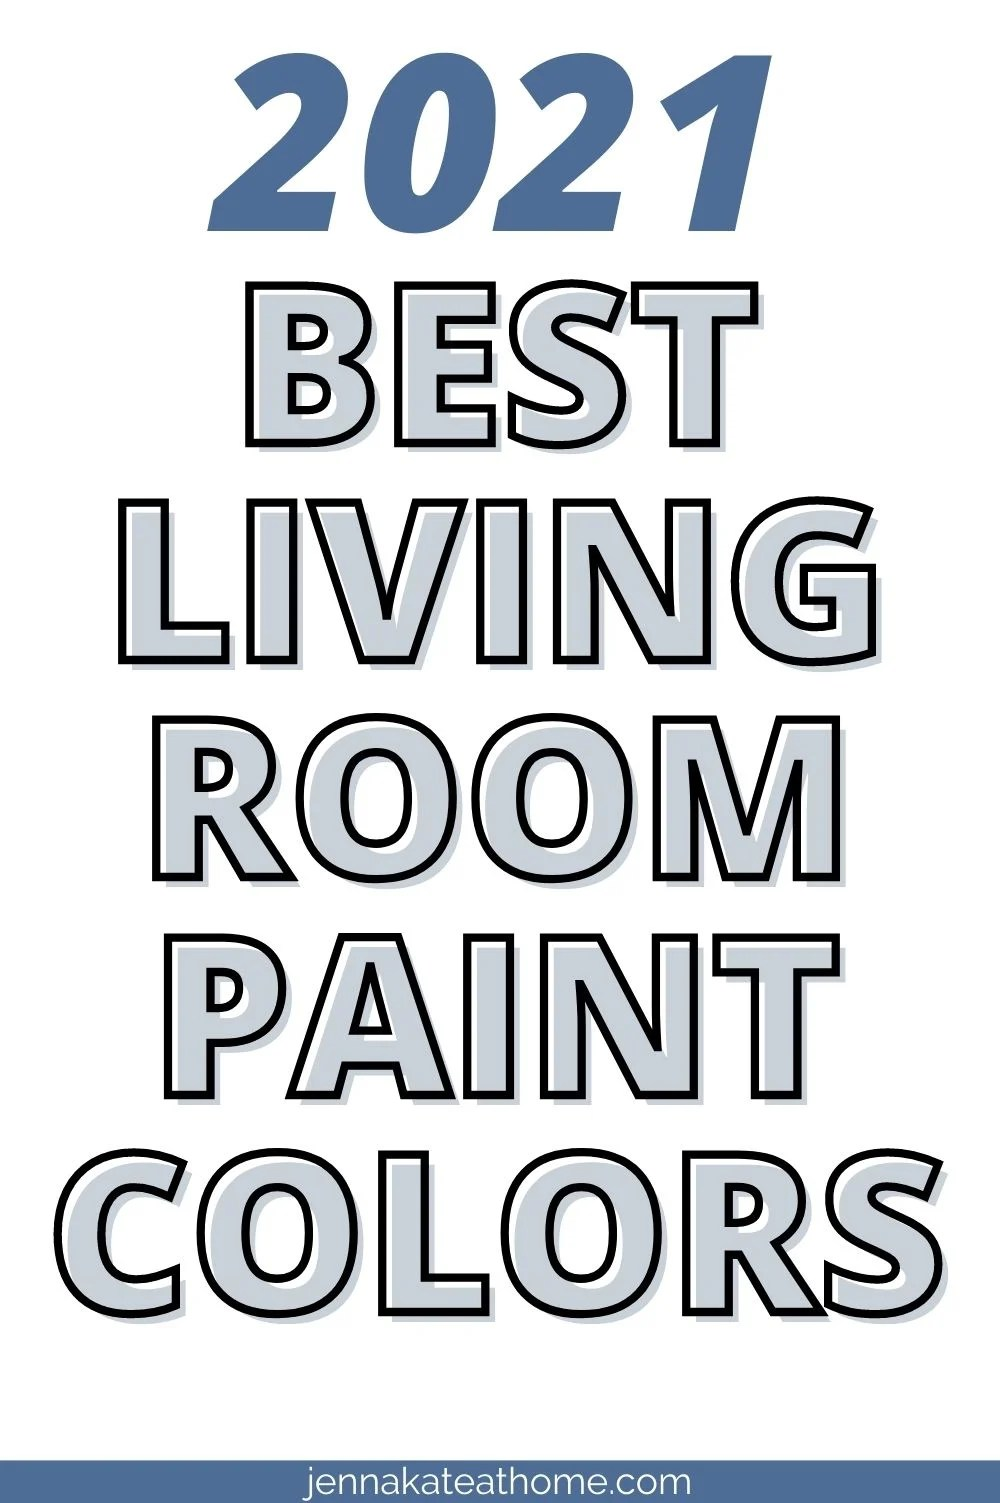 best living room paint colors pin